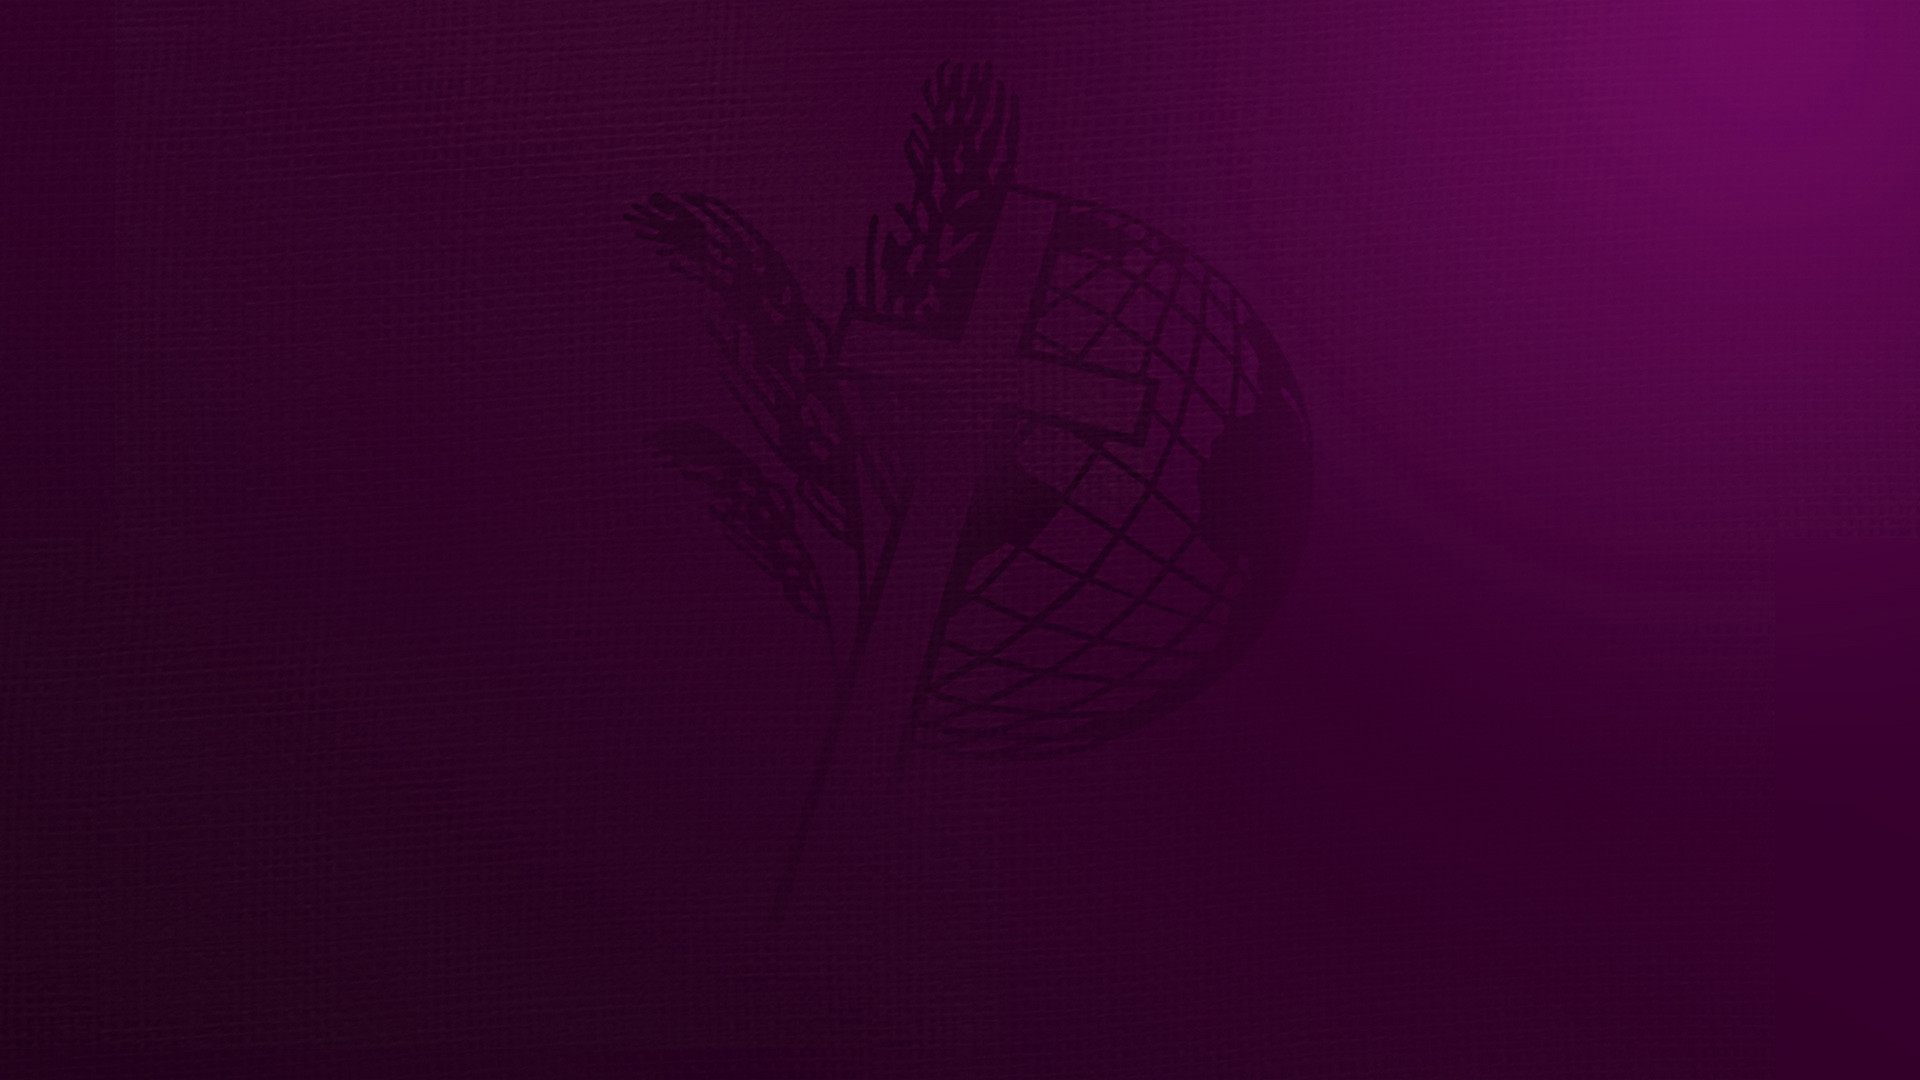 Royal Purple wallpapers 20 Collections 1920x1080